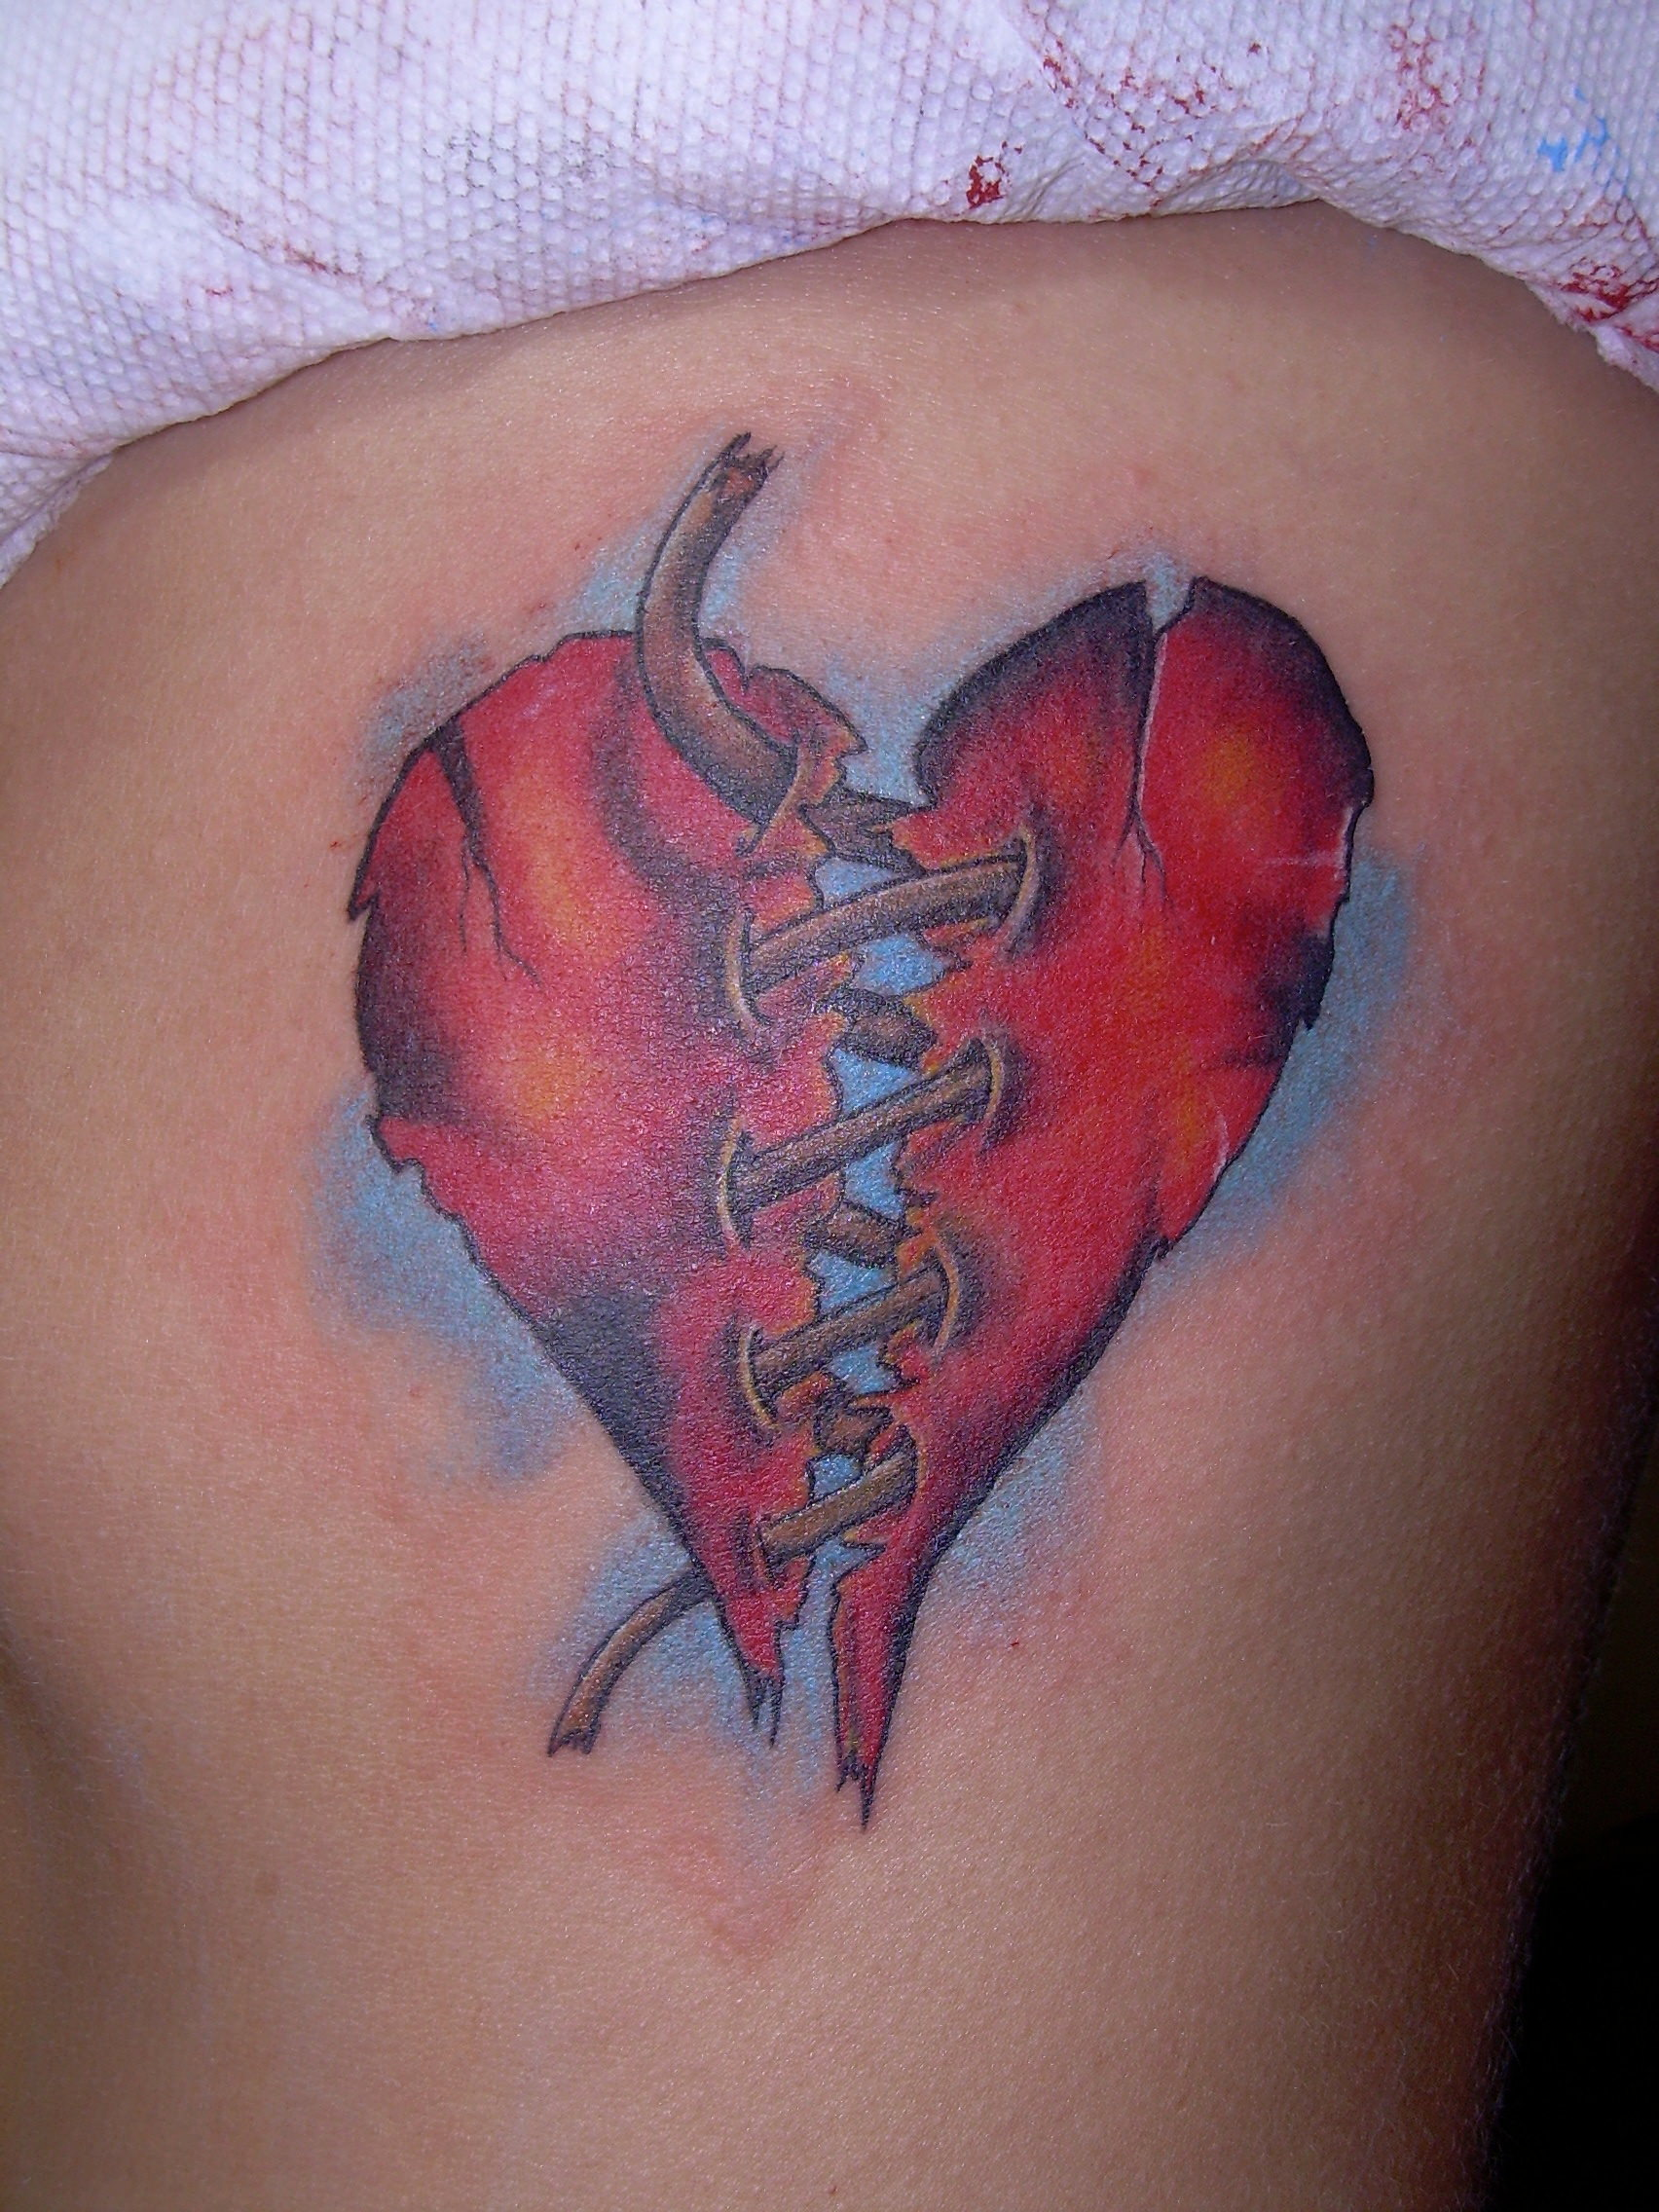 Broken Heart Tattoo Design - Best red broken heart